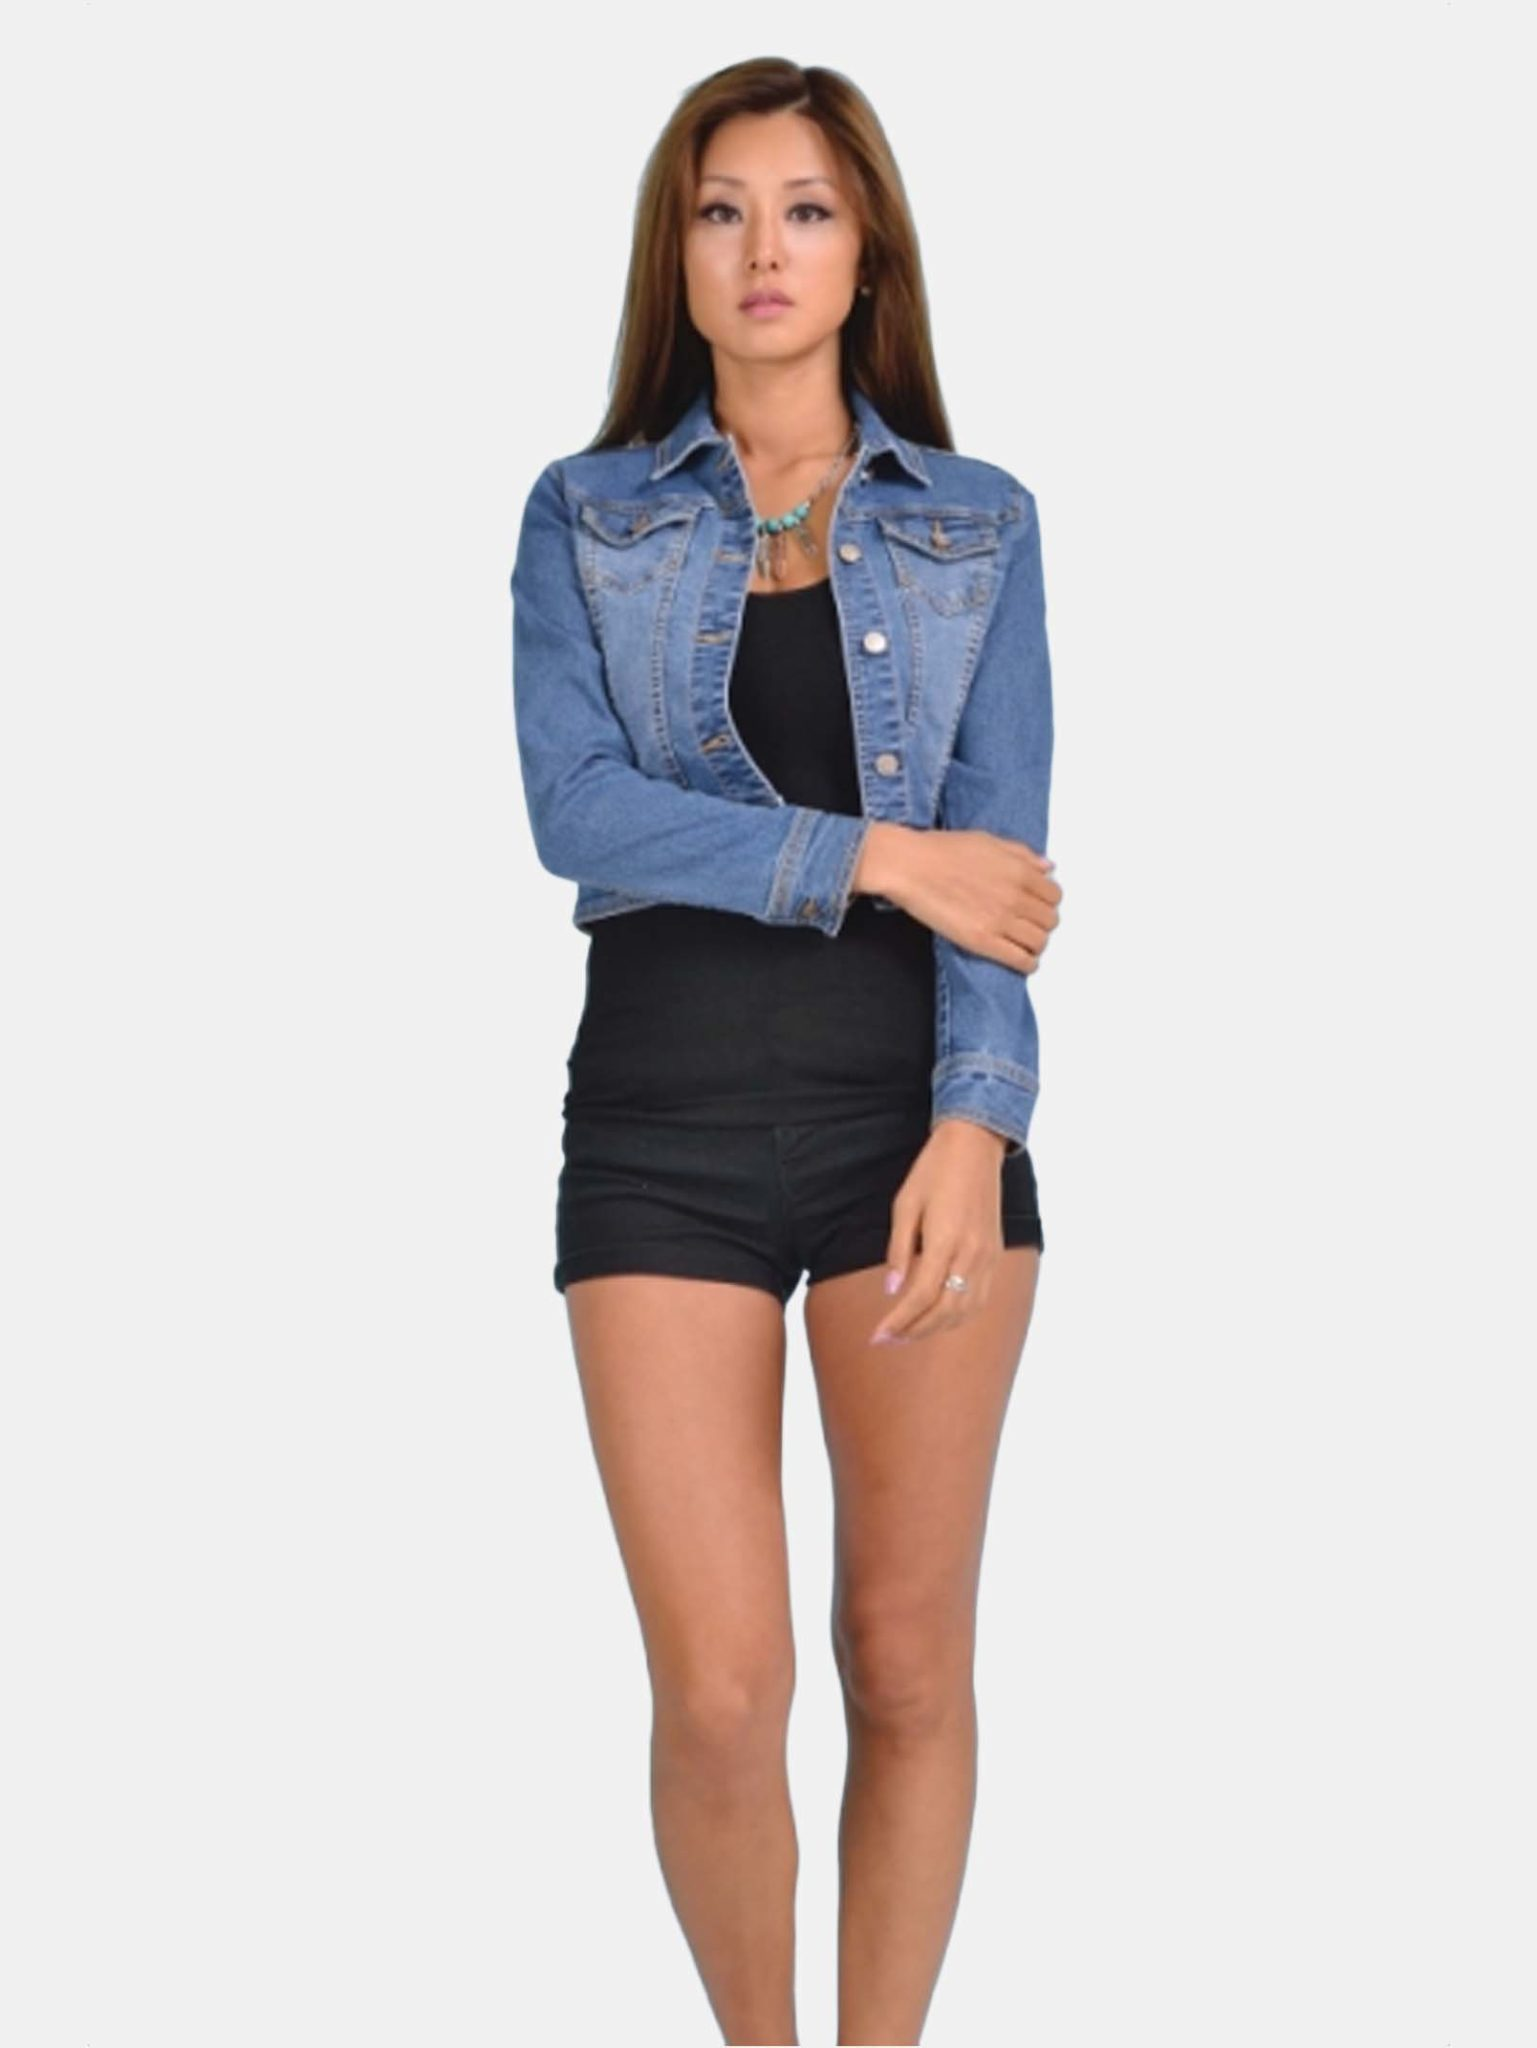 Denim Cropped Jean Jacket Modishonline Com